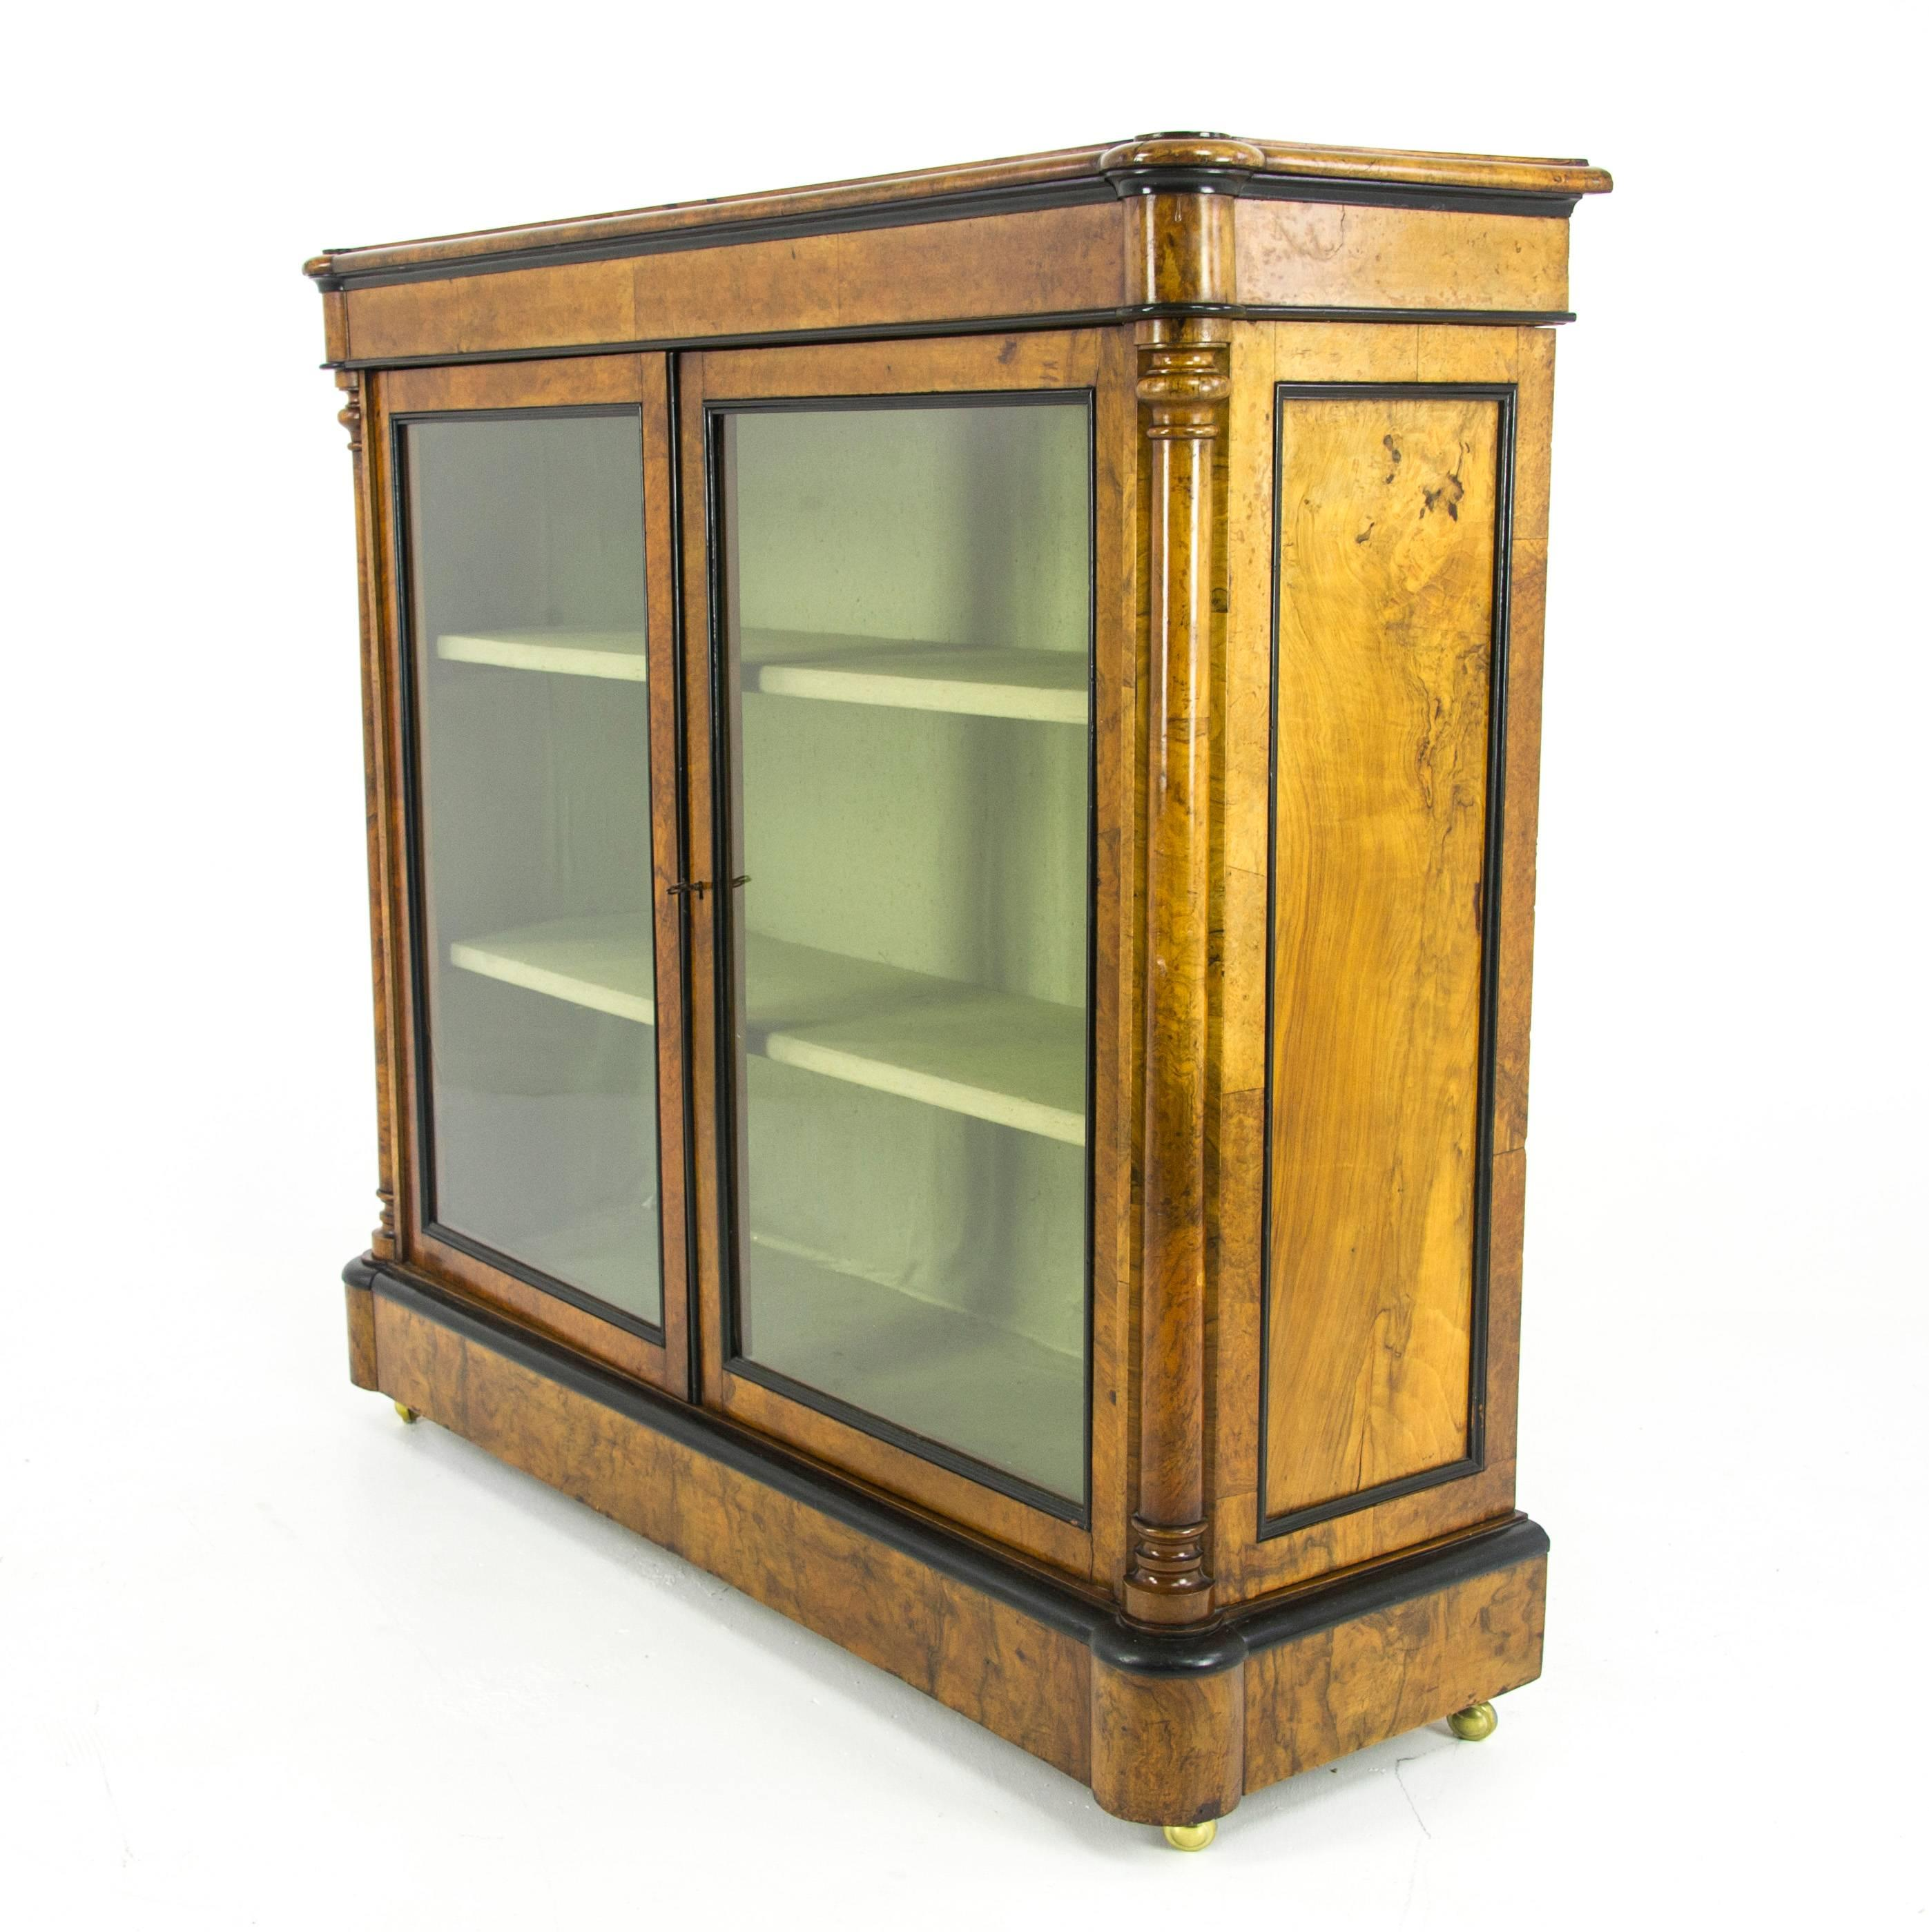 antique china only vintage room dining top glass cabinet of full size in kitchen built small hutch admirable cupboard piece makeover paintings